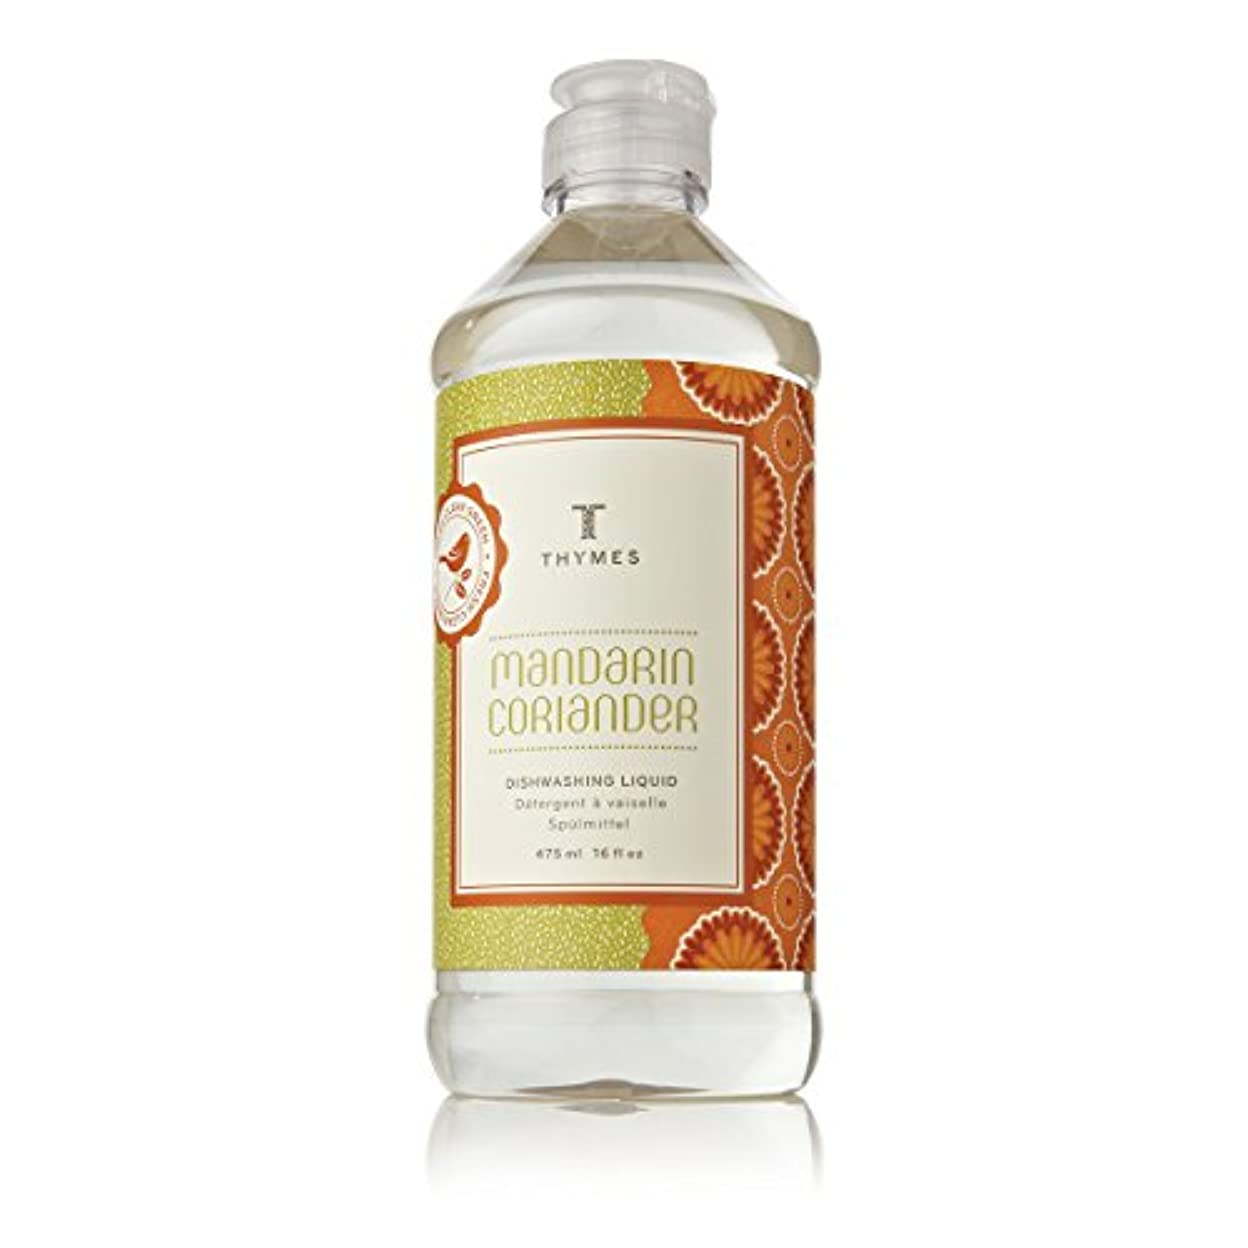 Thymes Mandarin Coriander Dishwashing Liquid - Oz. Natural Body Hand 0510720100 by Thymes [並行輸入品]